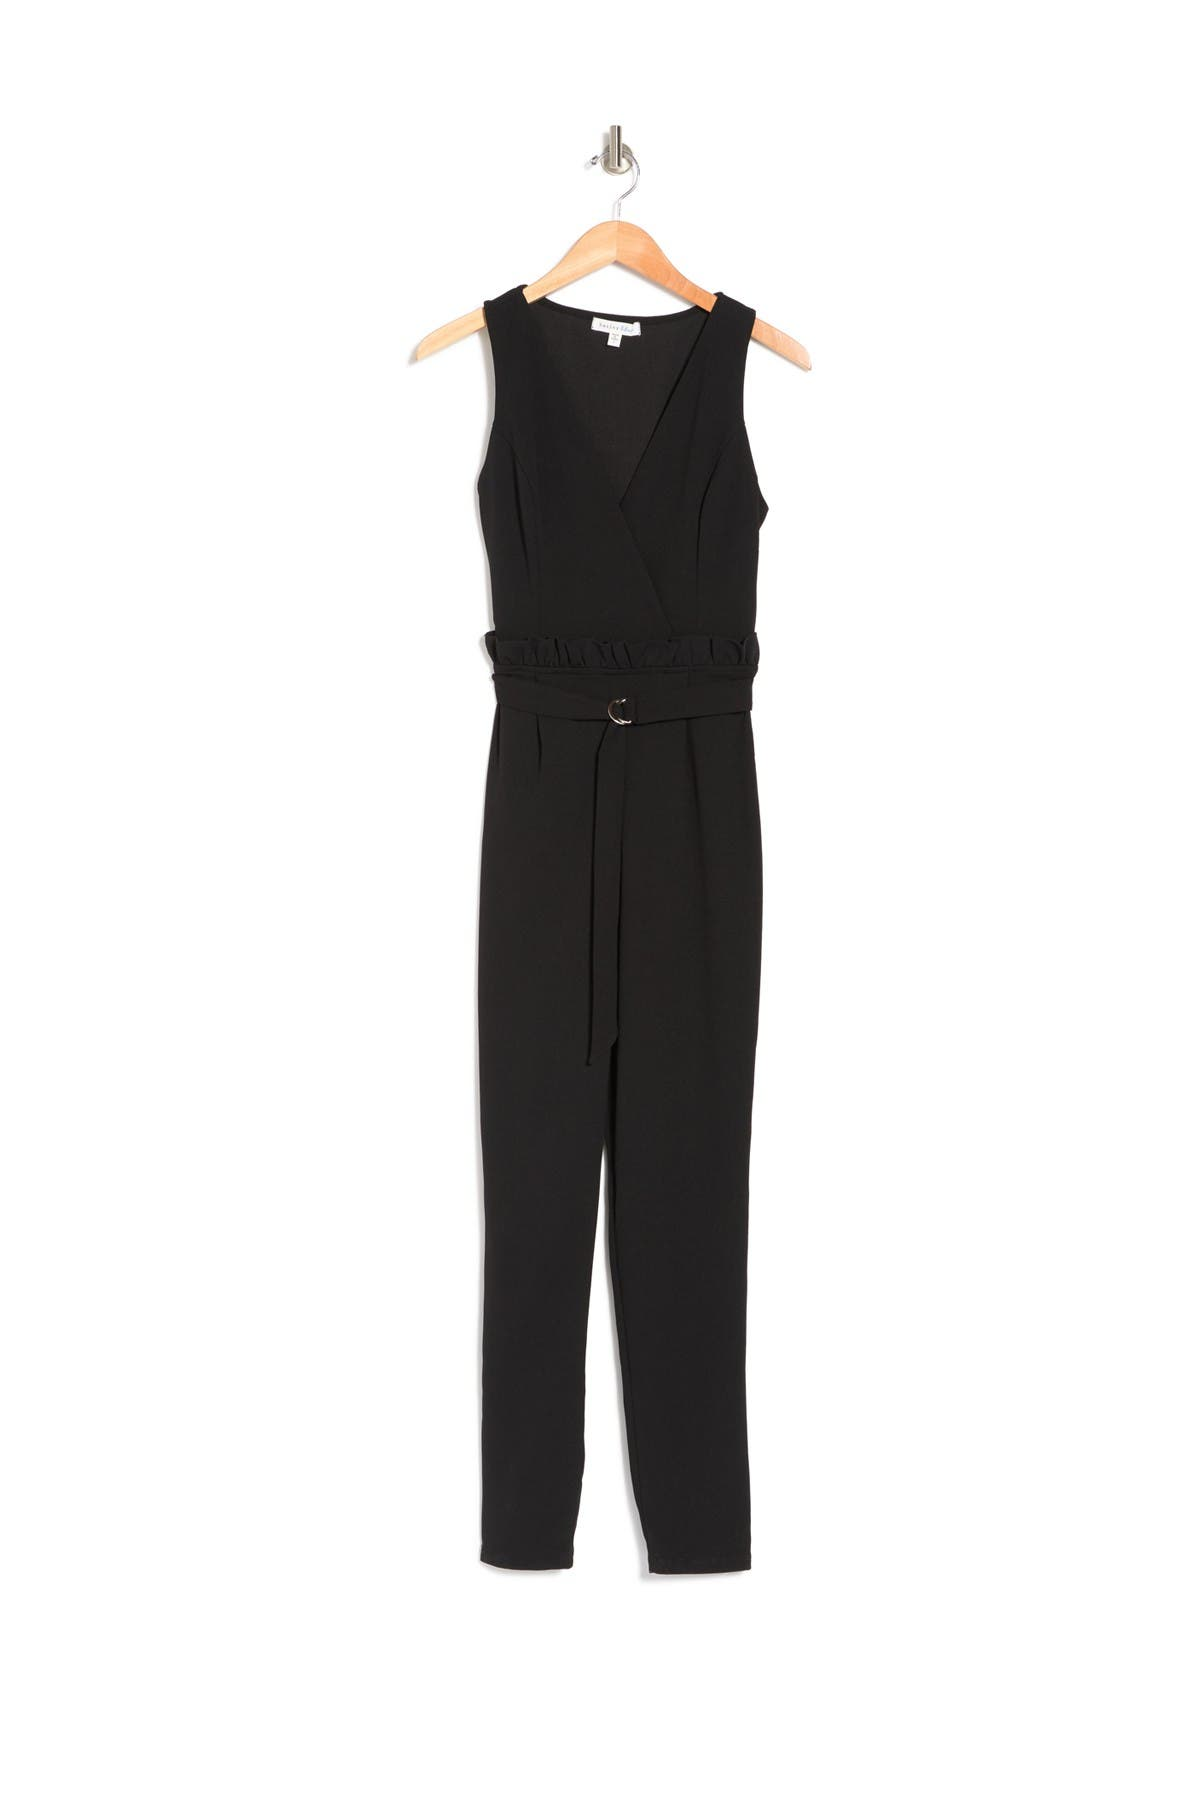 Image of BAILEY BLUE Belted Jumpsuit